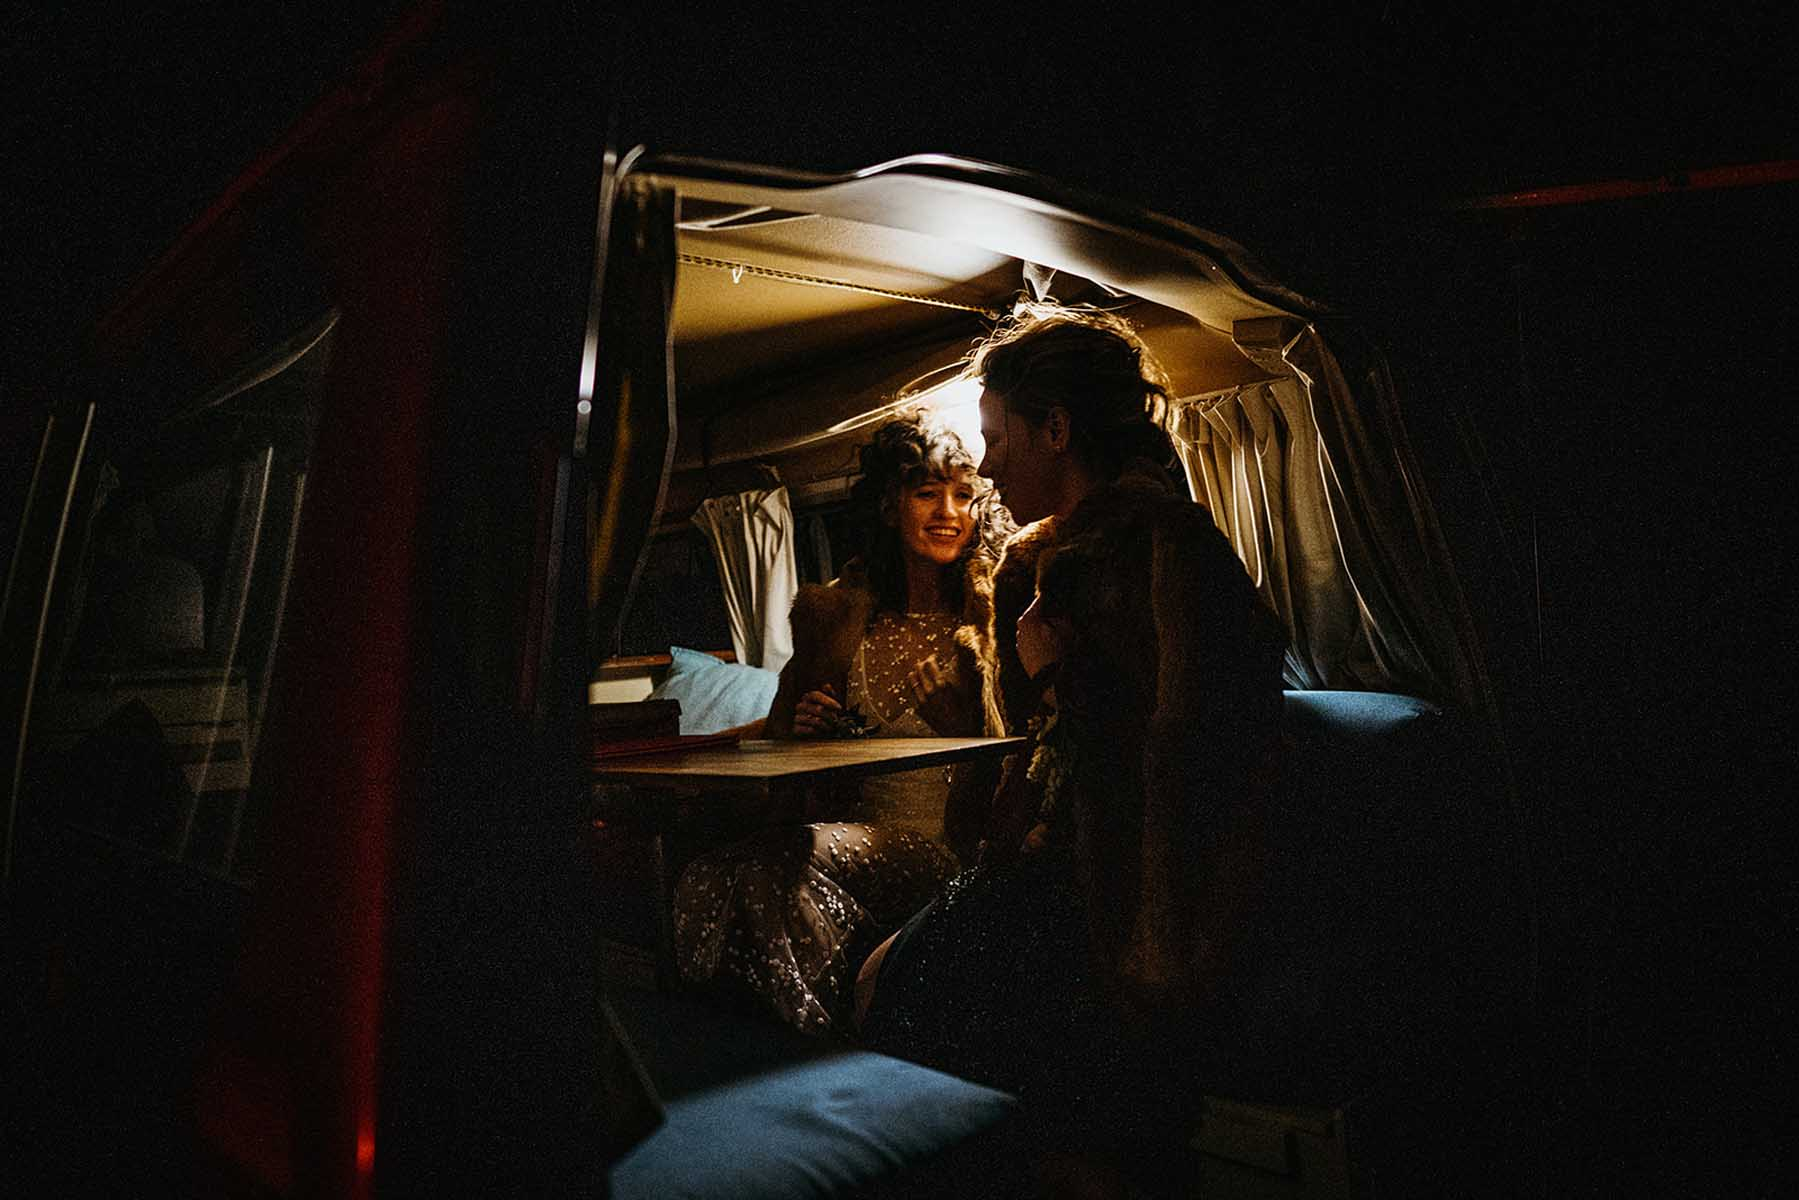 Lulu & Lime photography Victoria Australia Elopement glamping neon lesbian wedding Dancing With Her